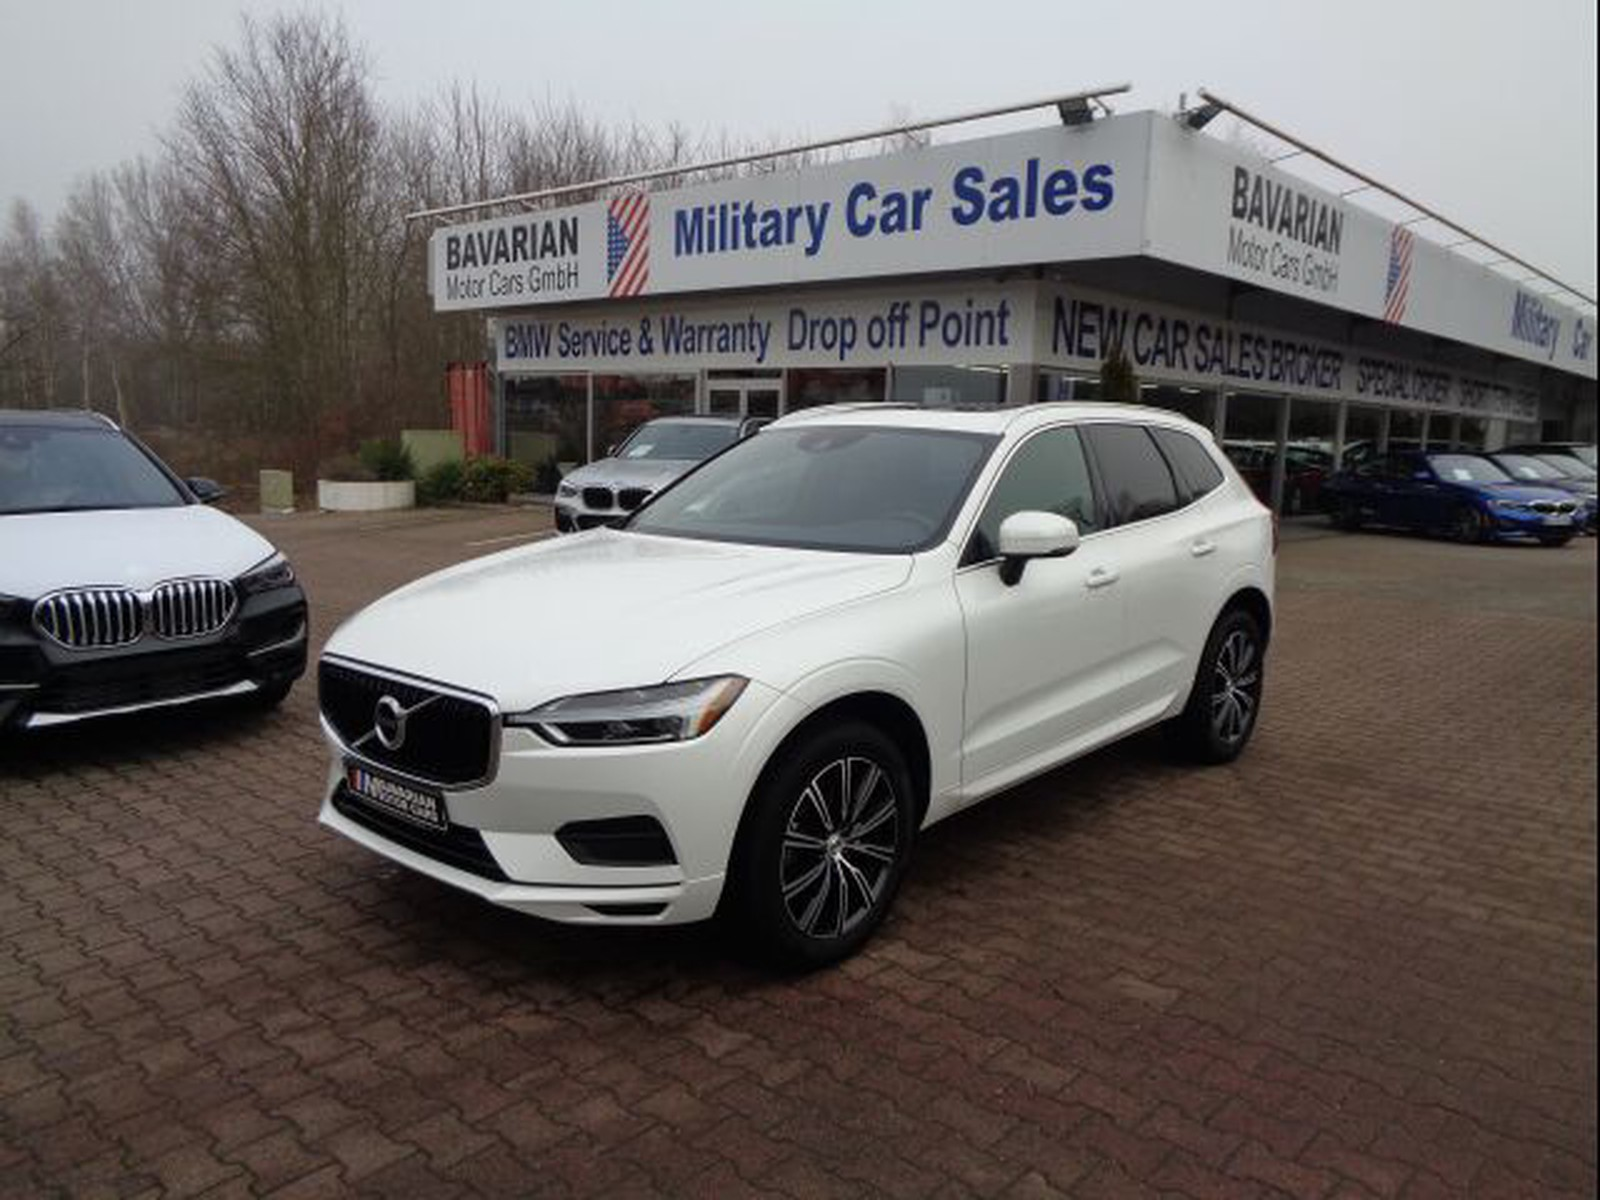 Volvo Xc60 Utility 4d T5 Momentum Awd Tax Free Military Sales In Ramstein Miesenbach Price 31995 Usd Int Nr U 16319 Sold